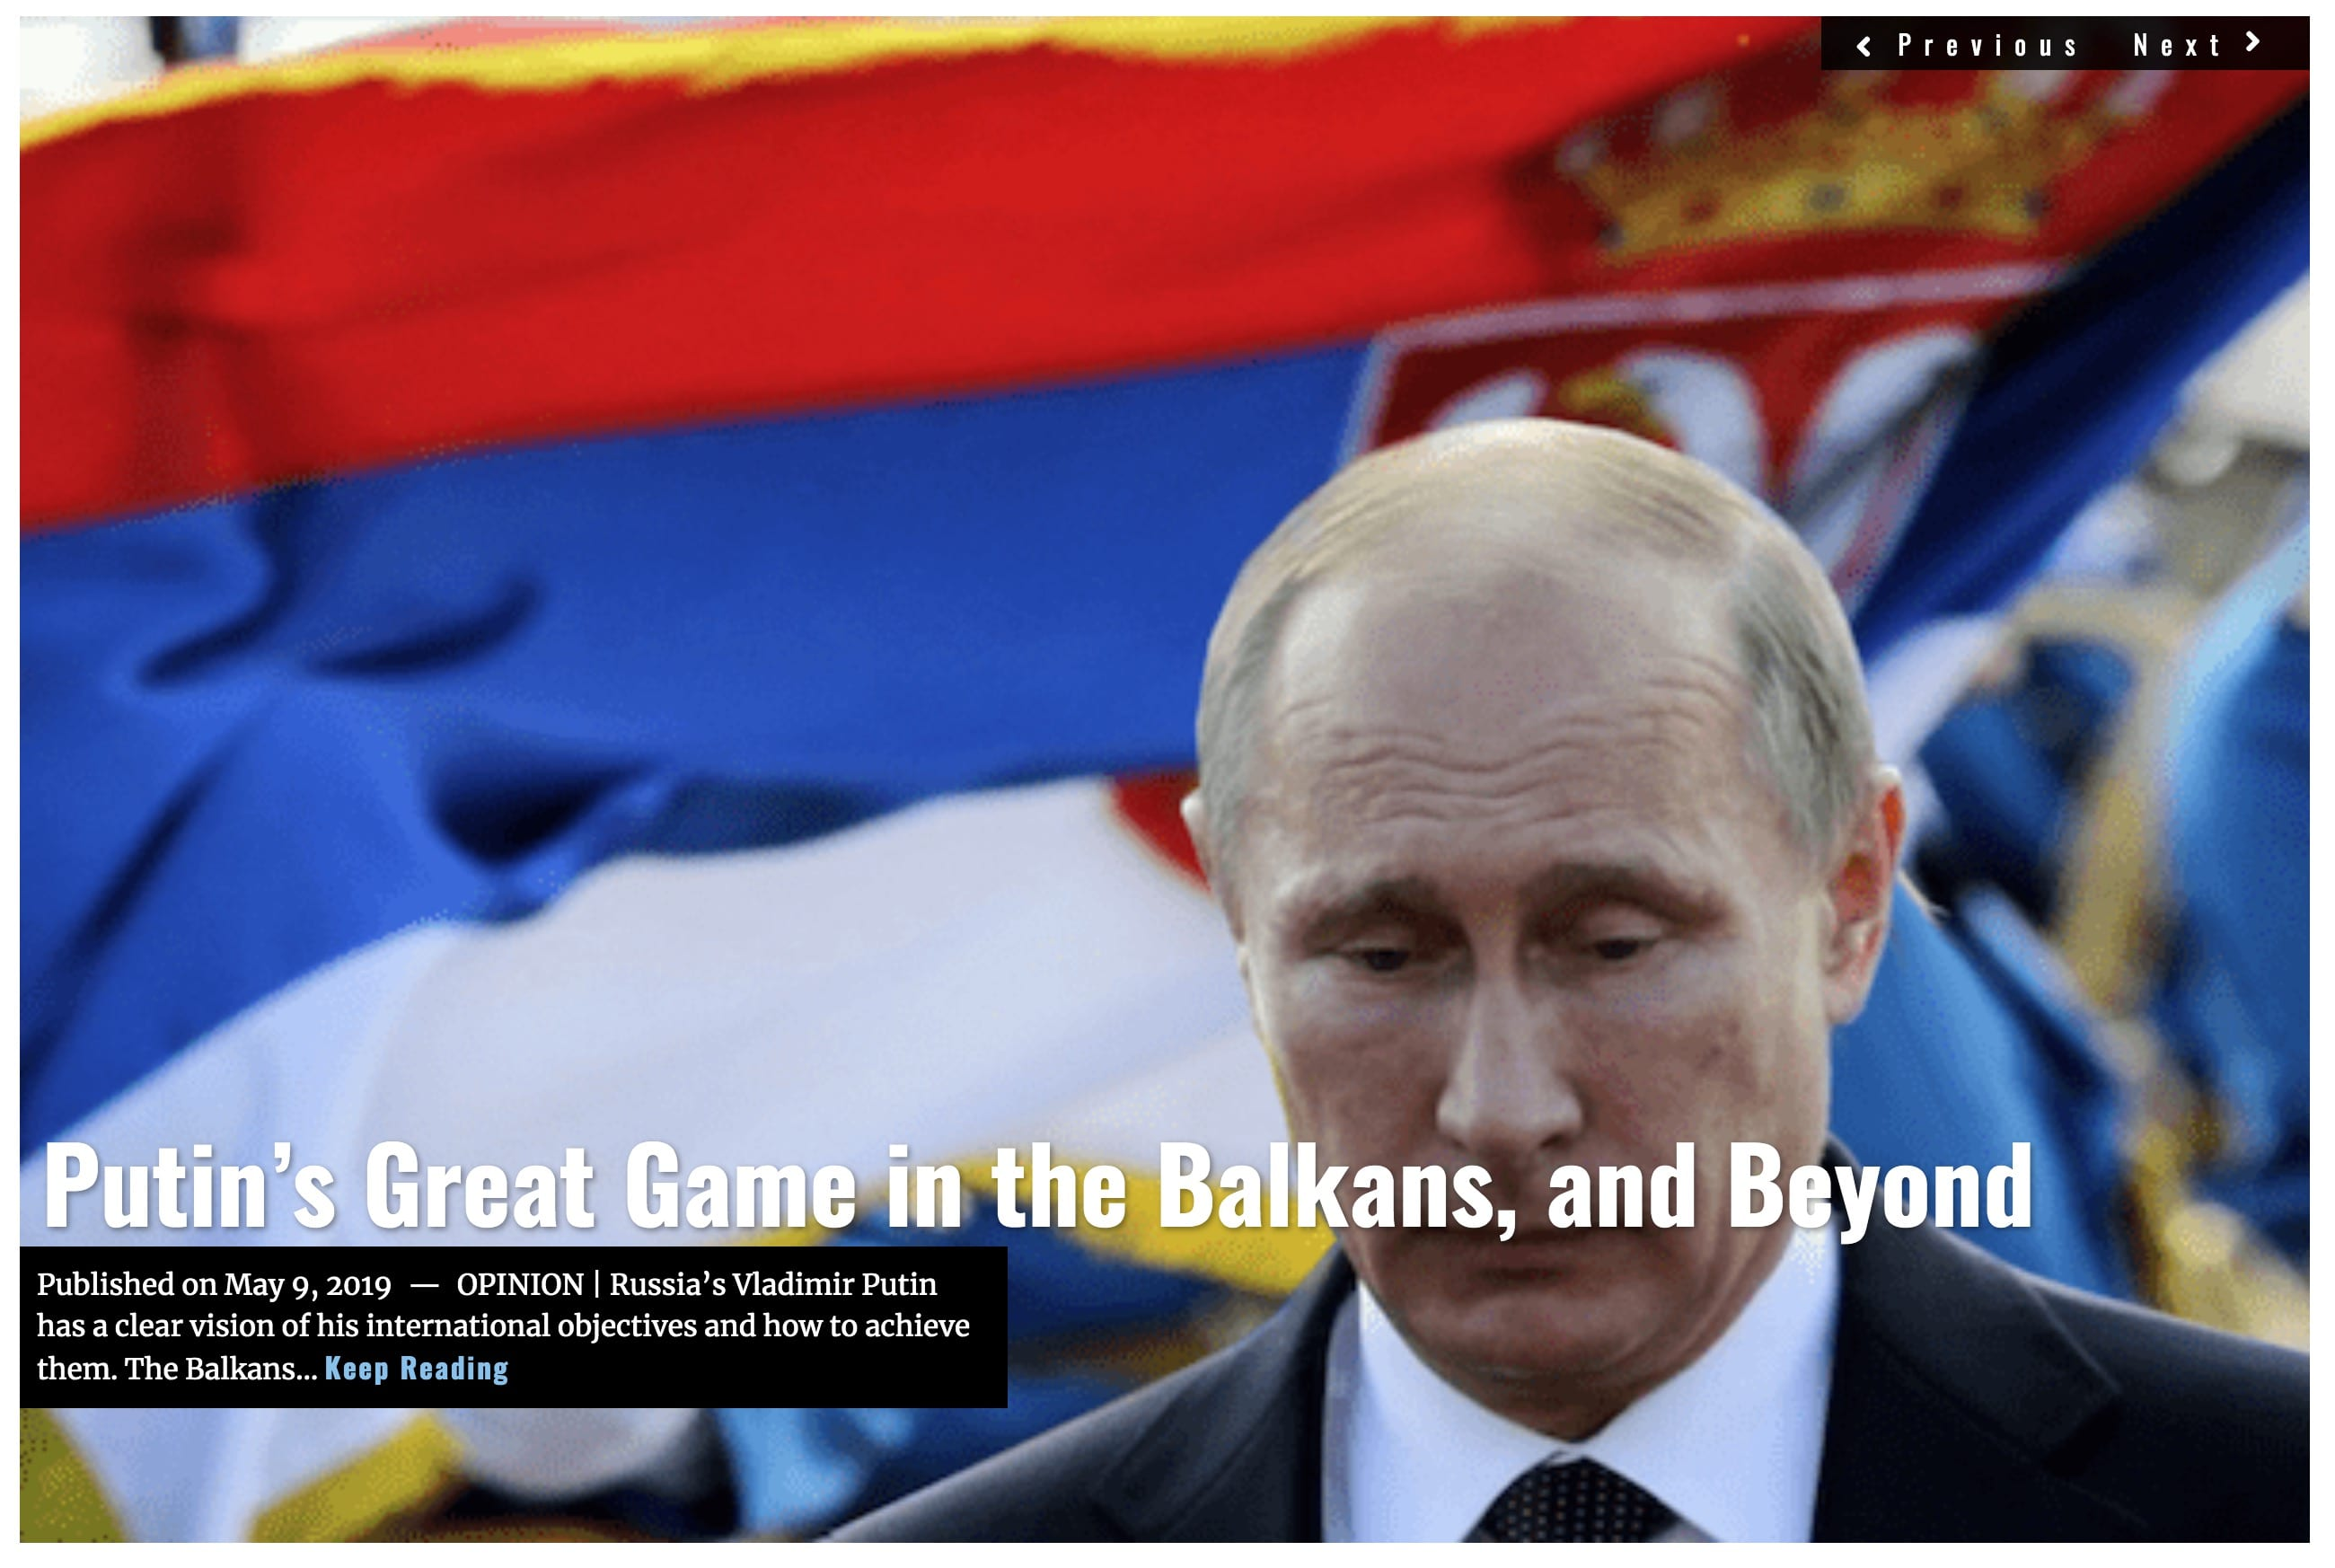 Lima Charlie News Headline Putins Great Game in the Balkans MAY 9 2019